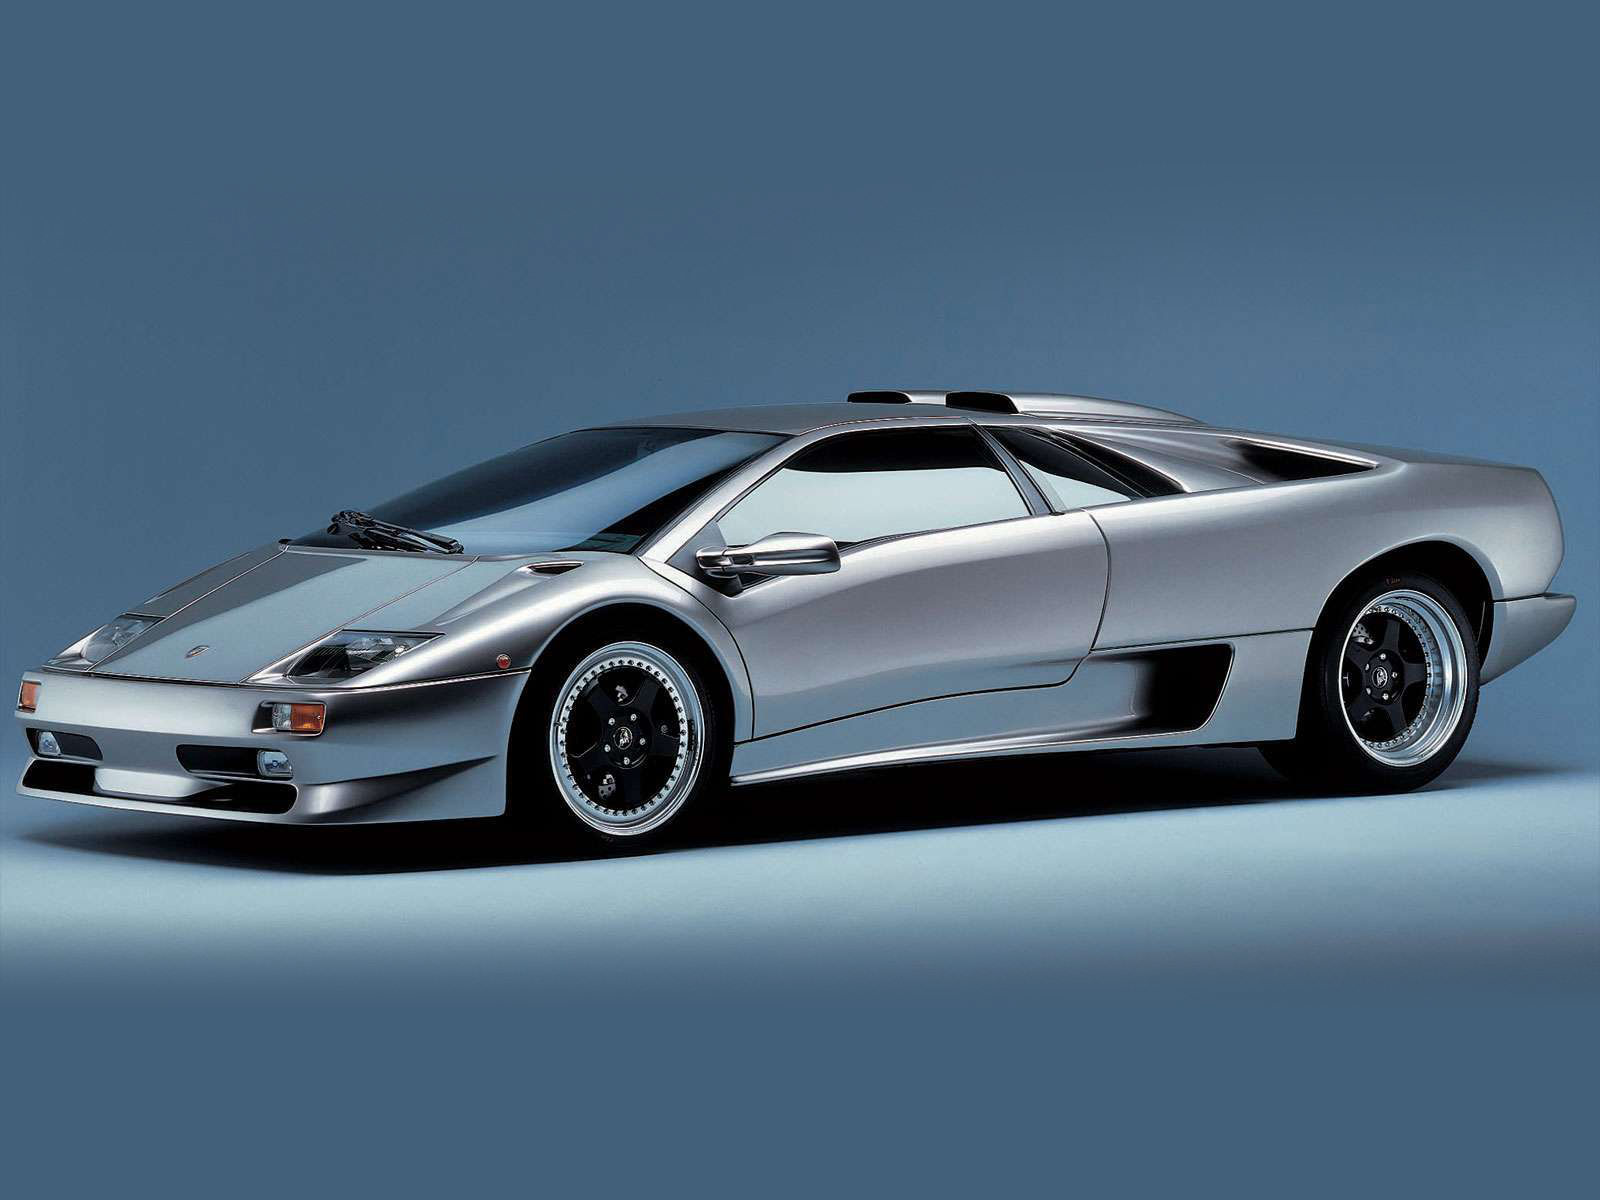 car accident lawyers info 1996 lamborghini diablo sv pictures. Black Bedroom Furniture Sets. Home Design Ideas